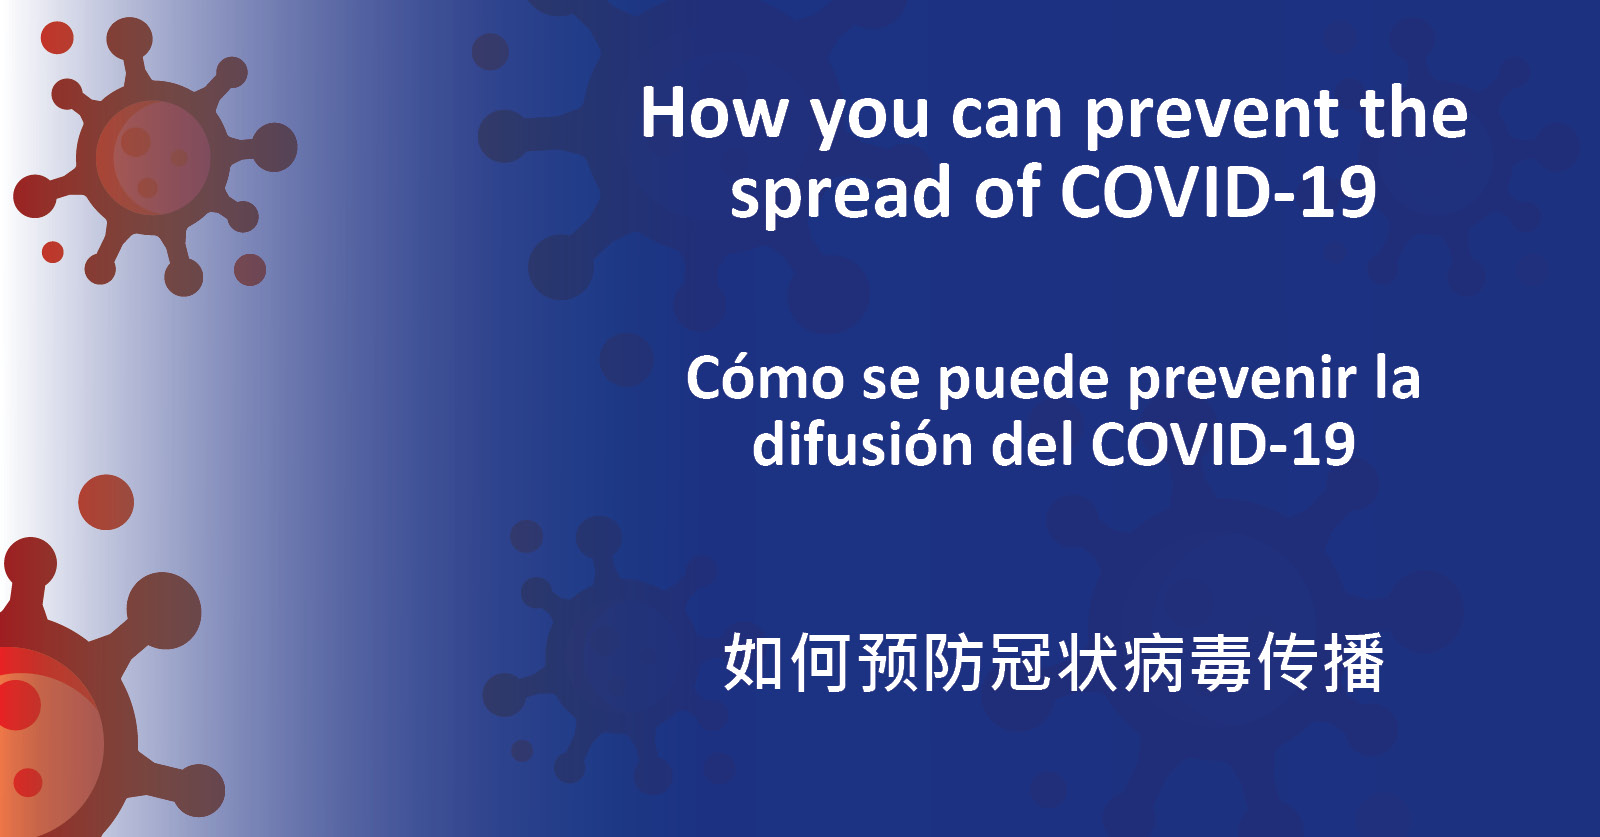 What you can do to prevent the spread of COVID-19